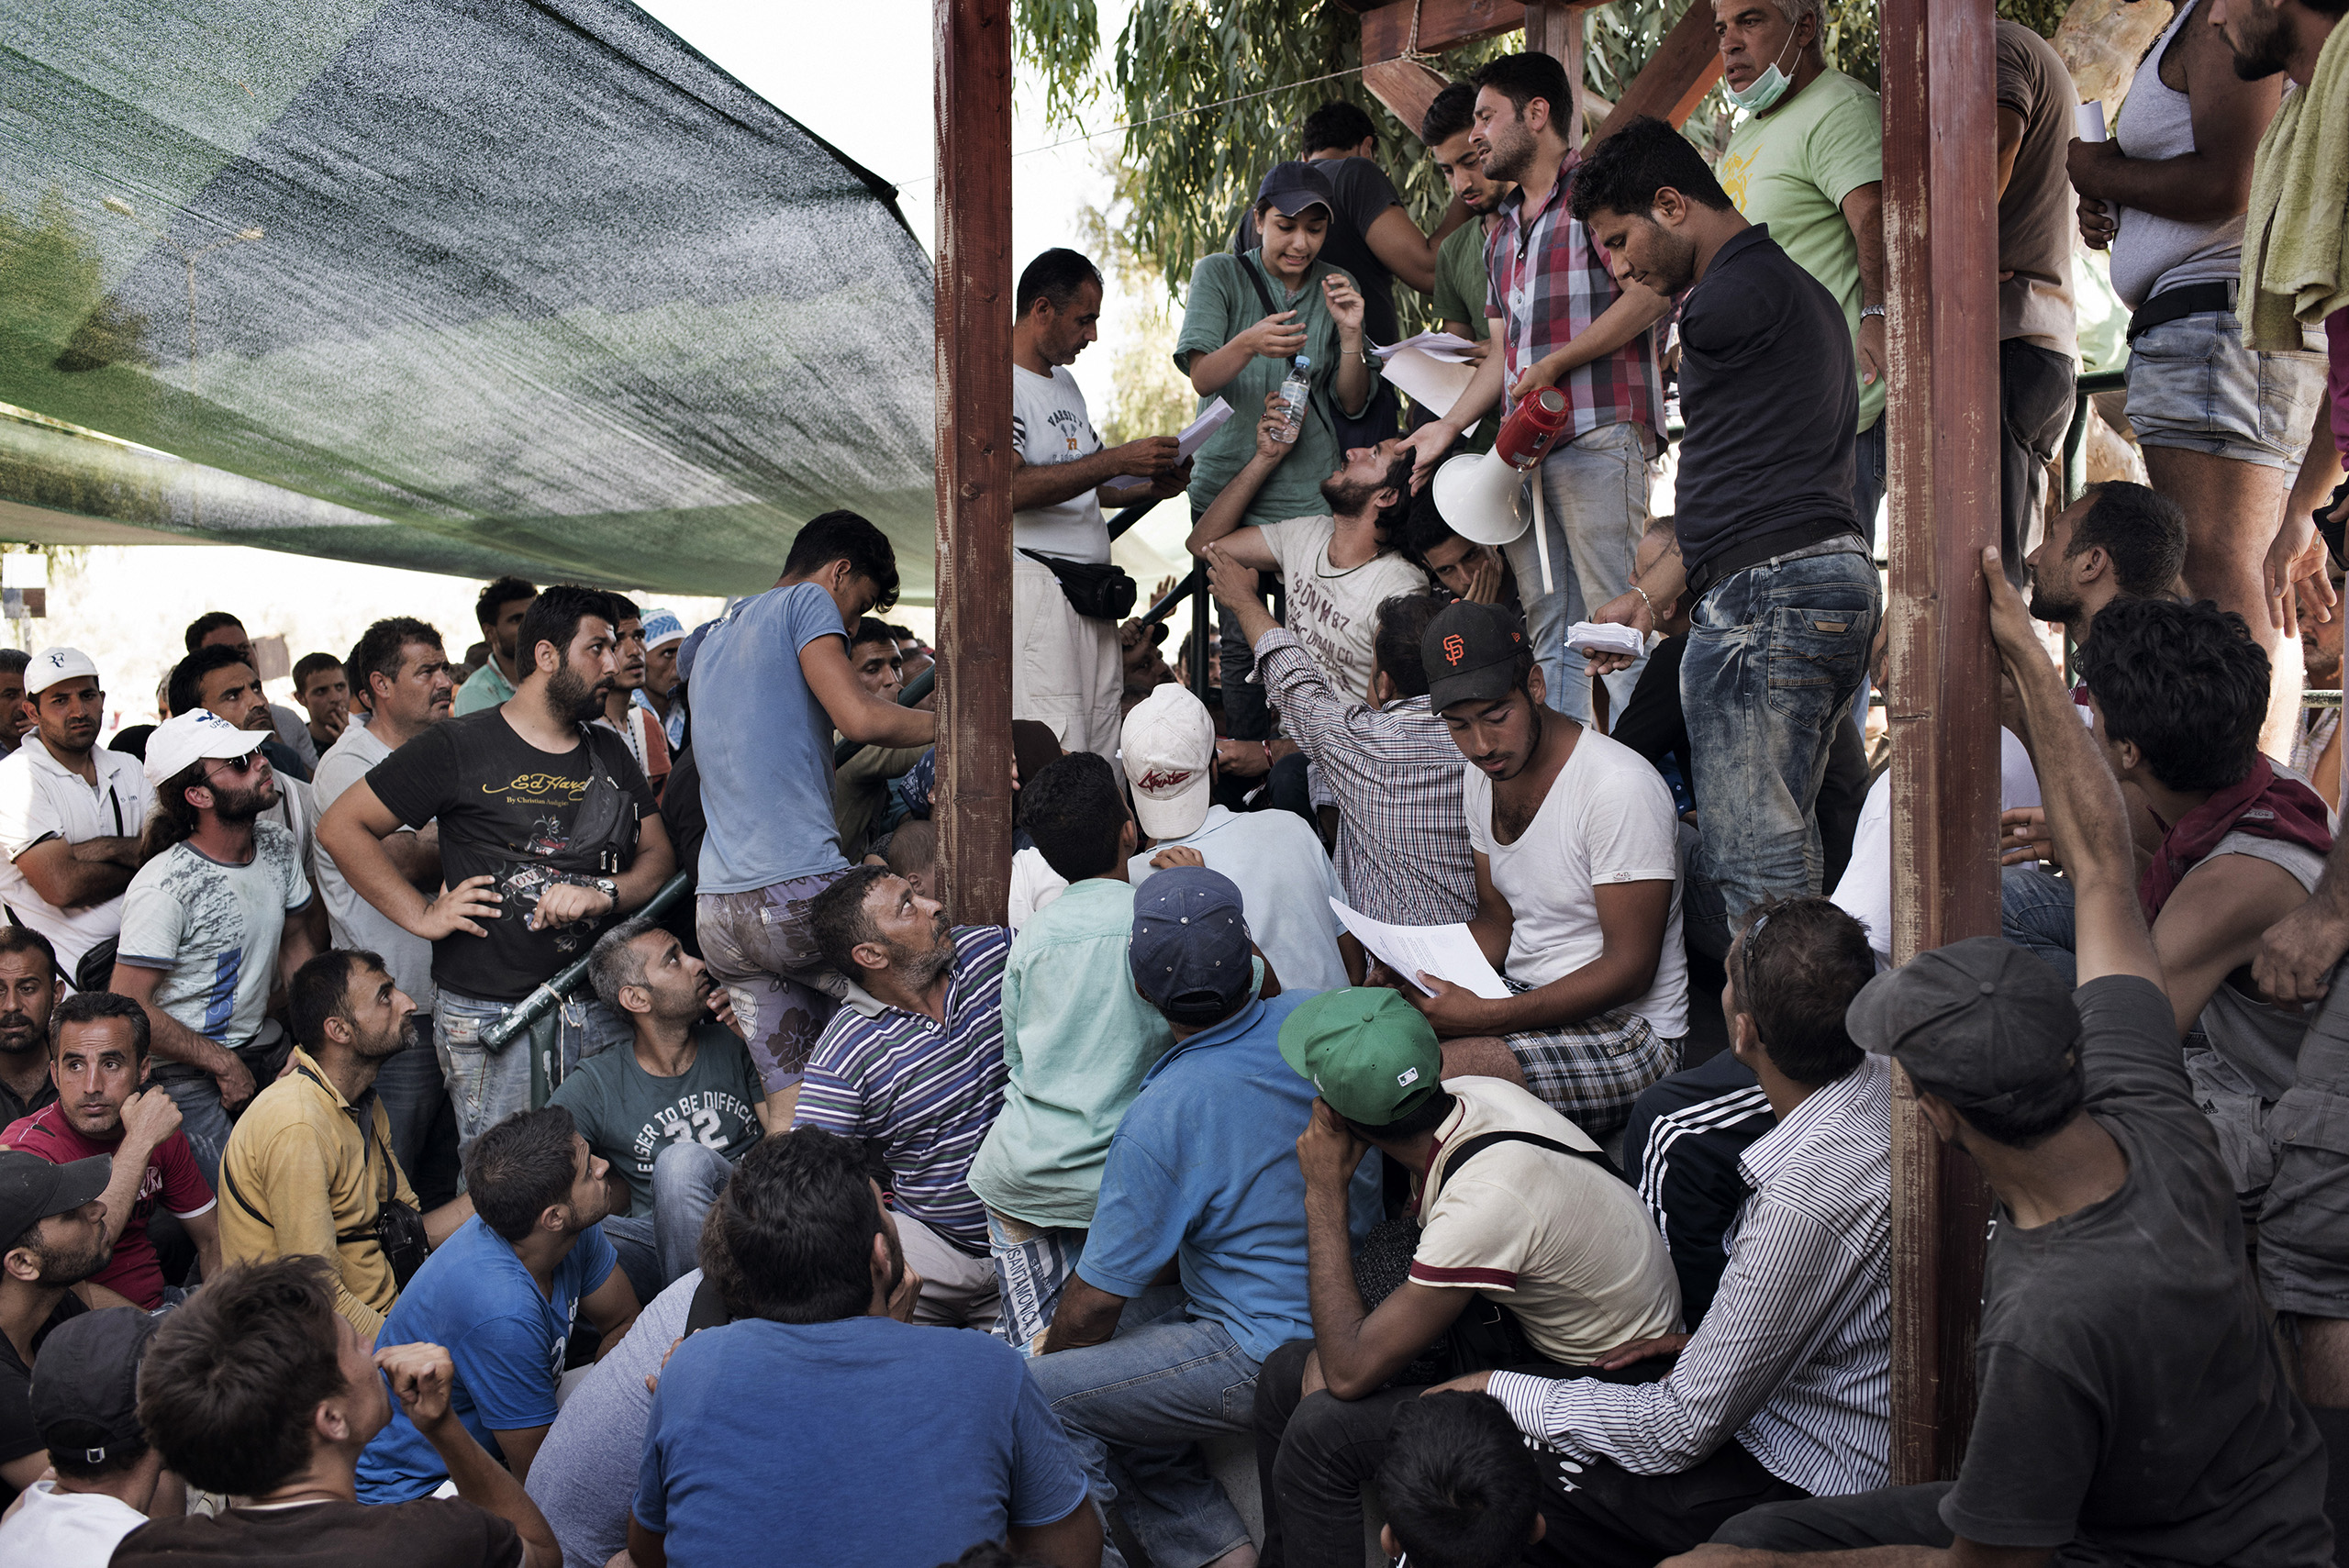 Migrants wait at a camp for asylum seekers on the Greek island of Lesbos to receive registration documents from Greek authorities that will allow them to leave the island on ferries and travel onward toward Western Europe.